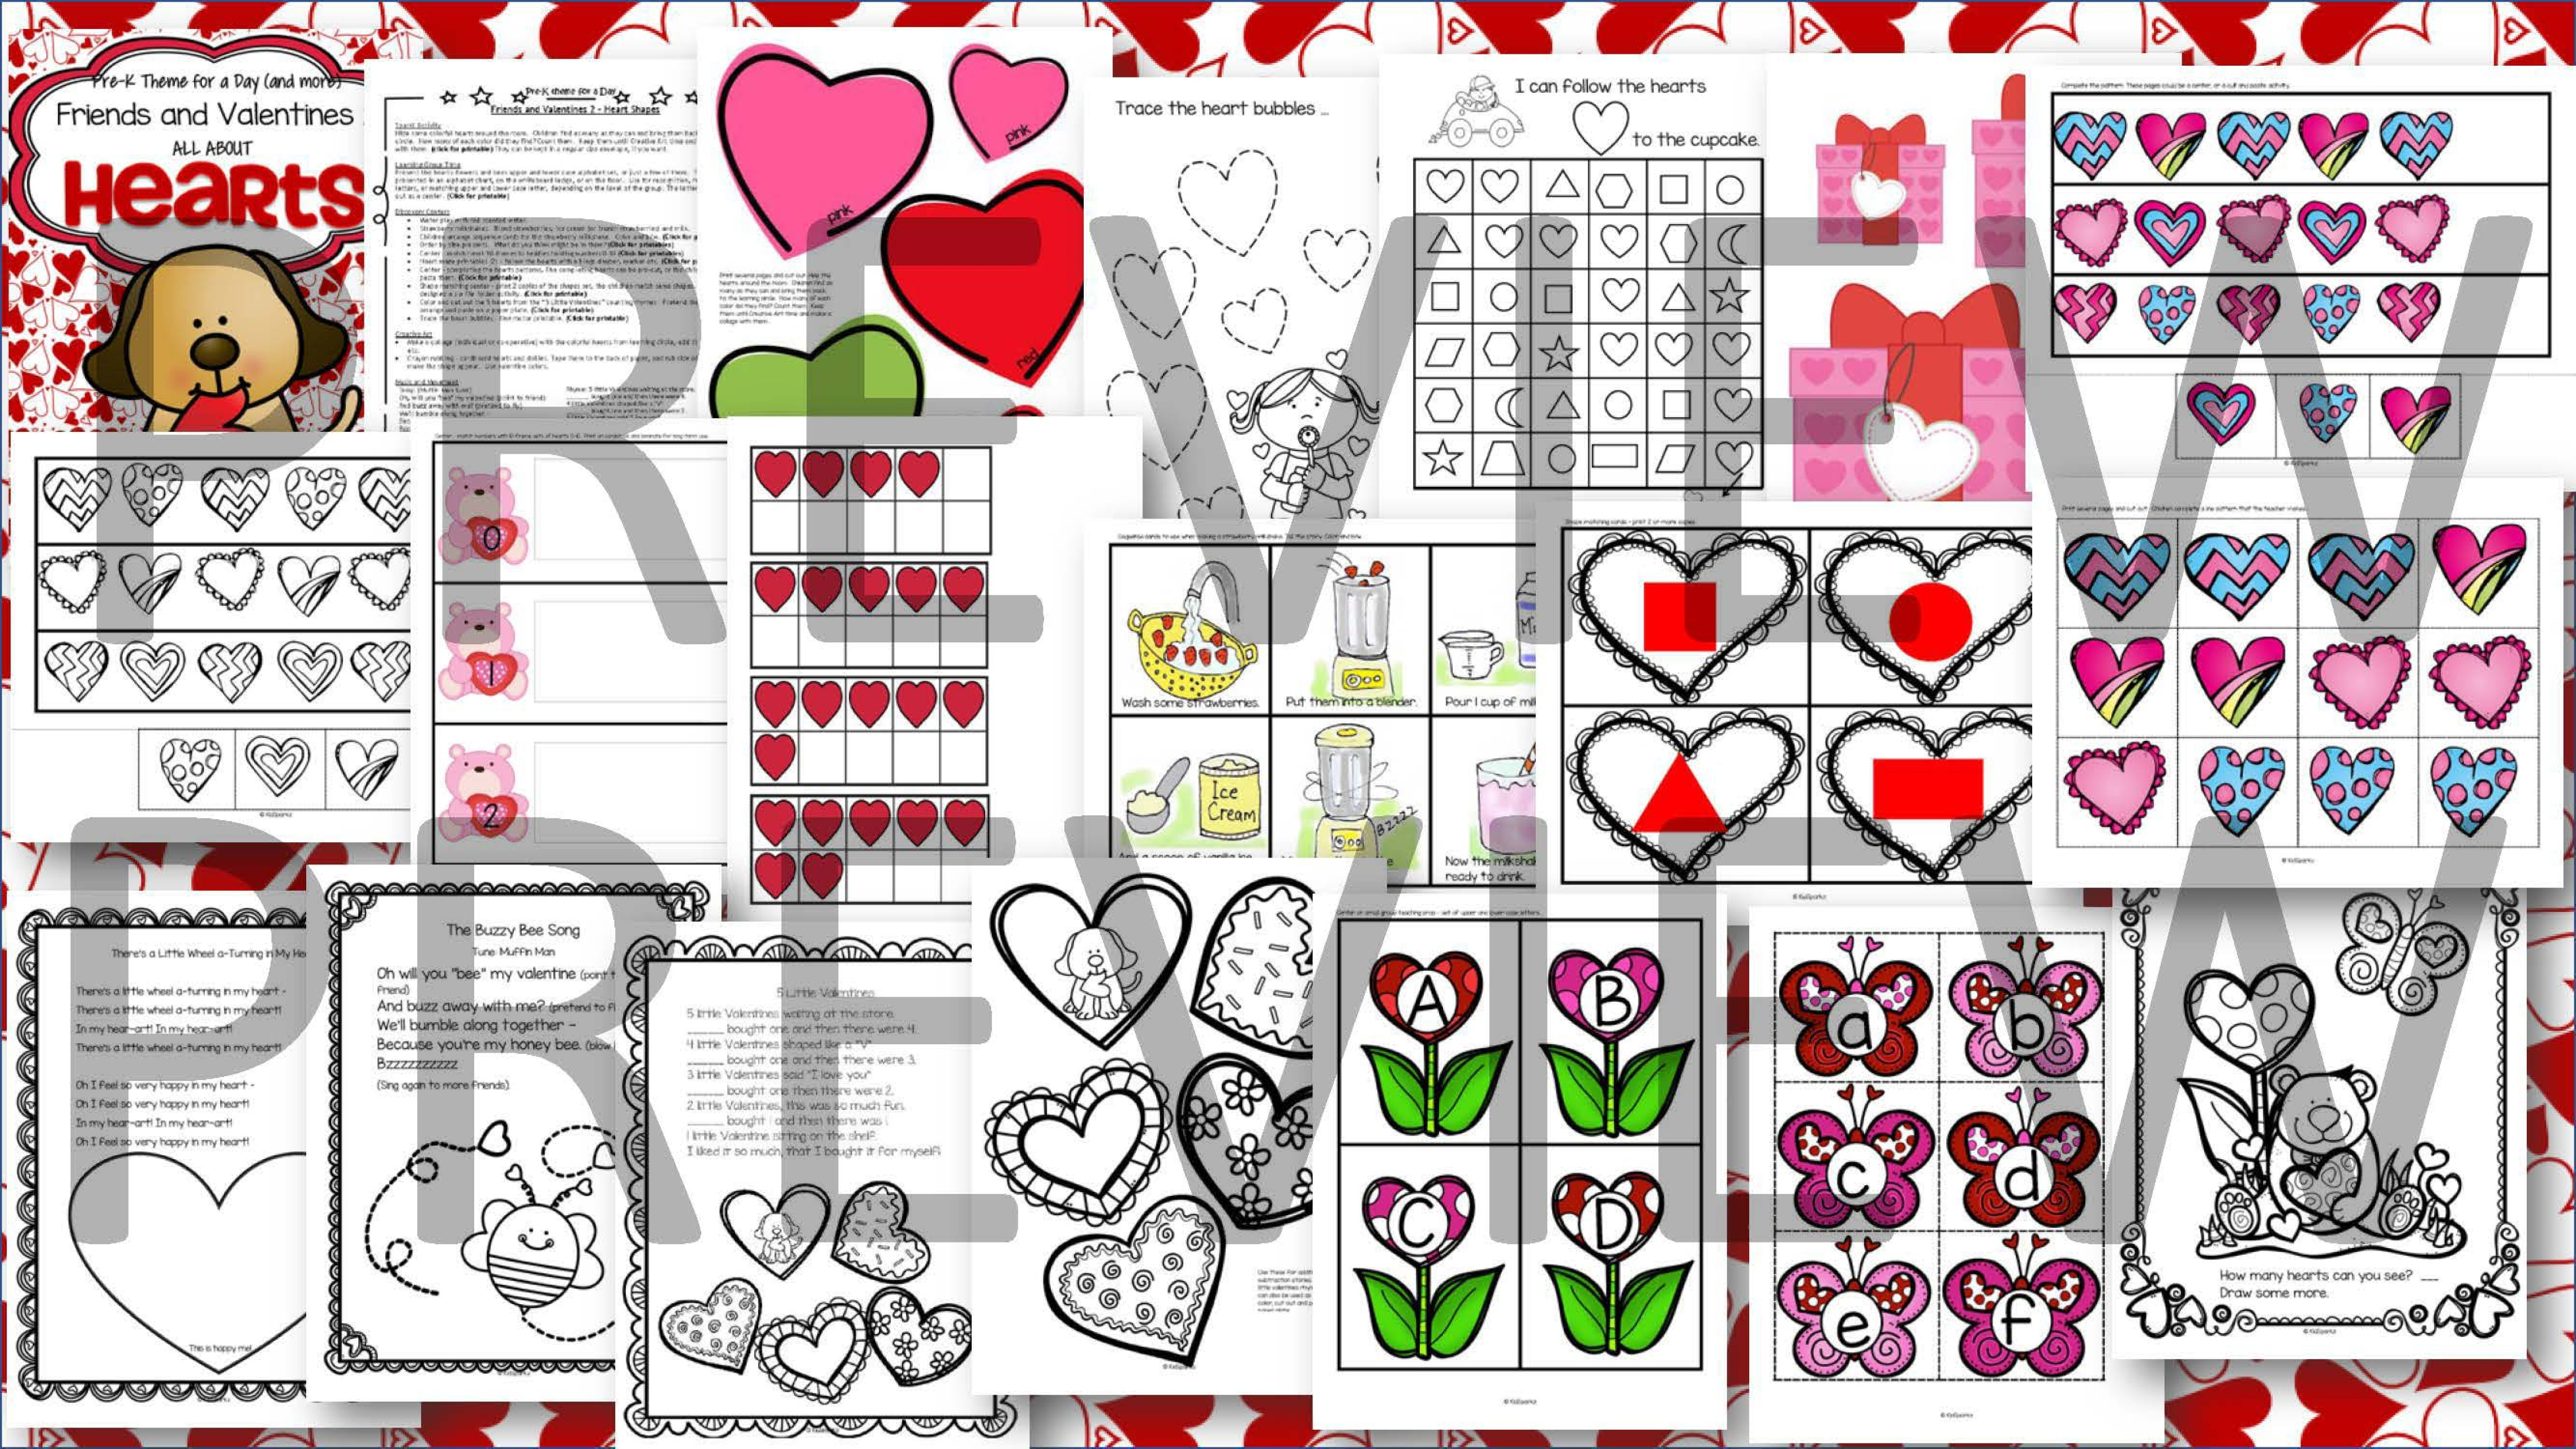 Hearts And Valentines Centers Activities And Printables For Preschool And Pre K